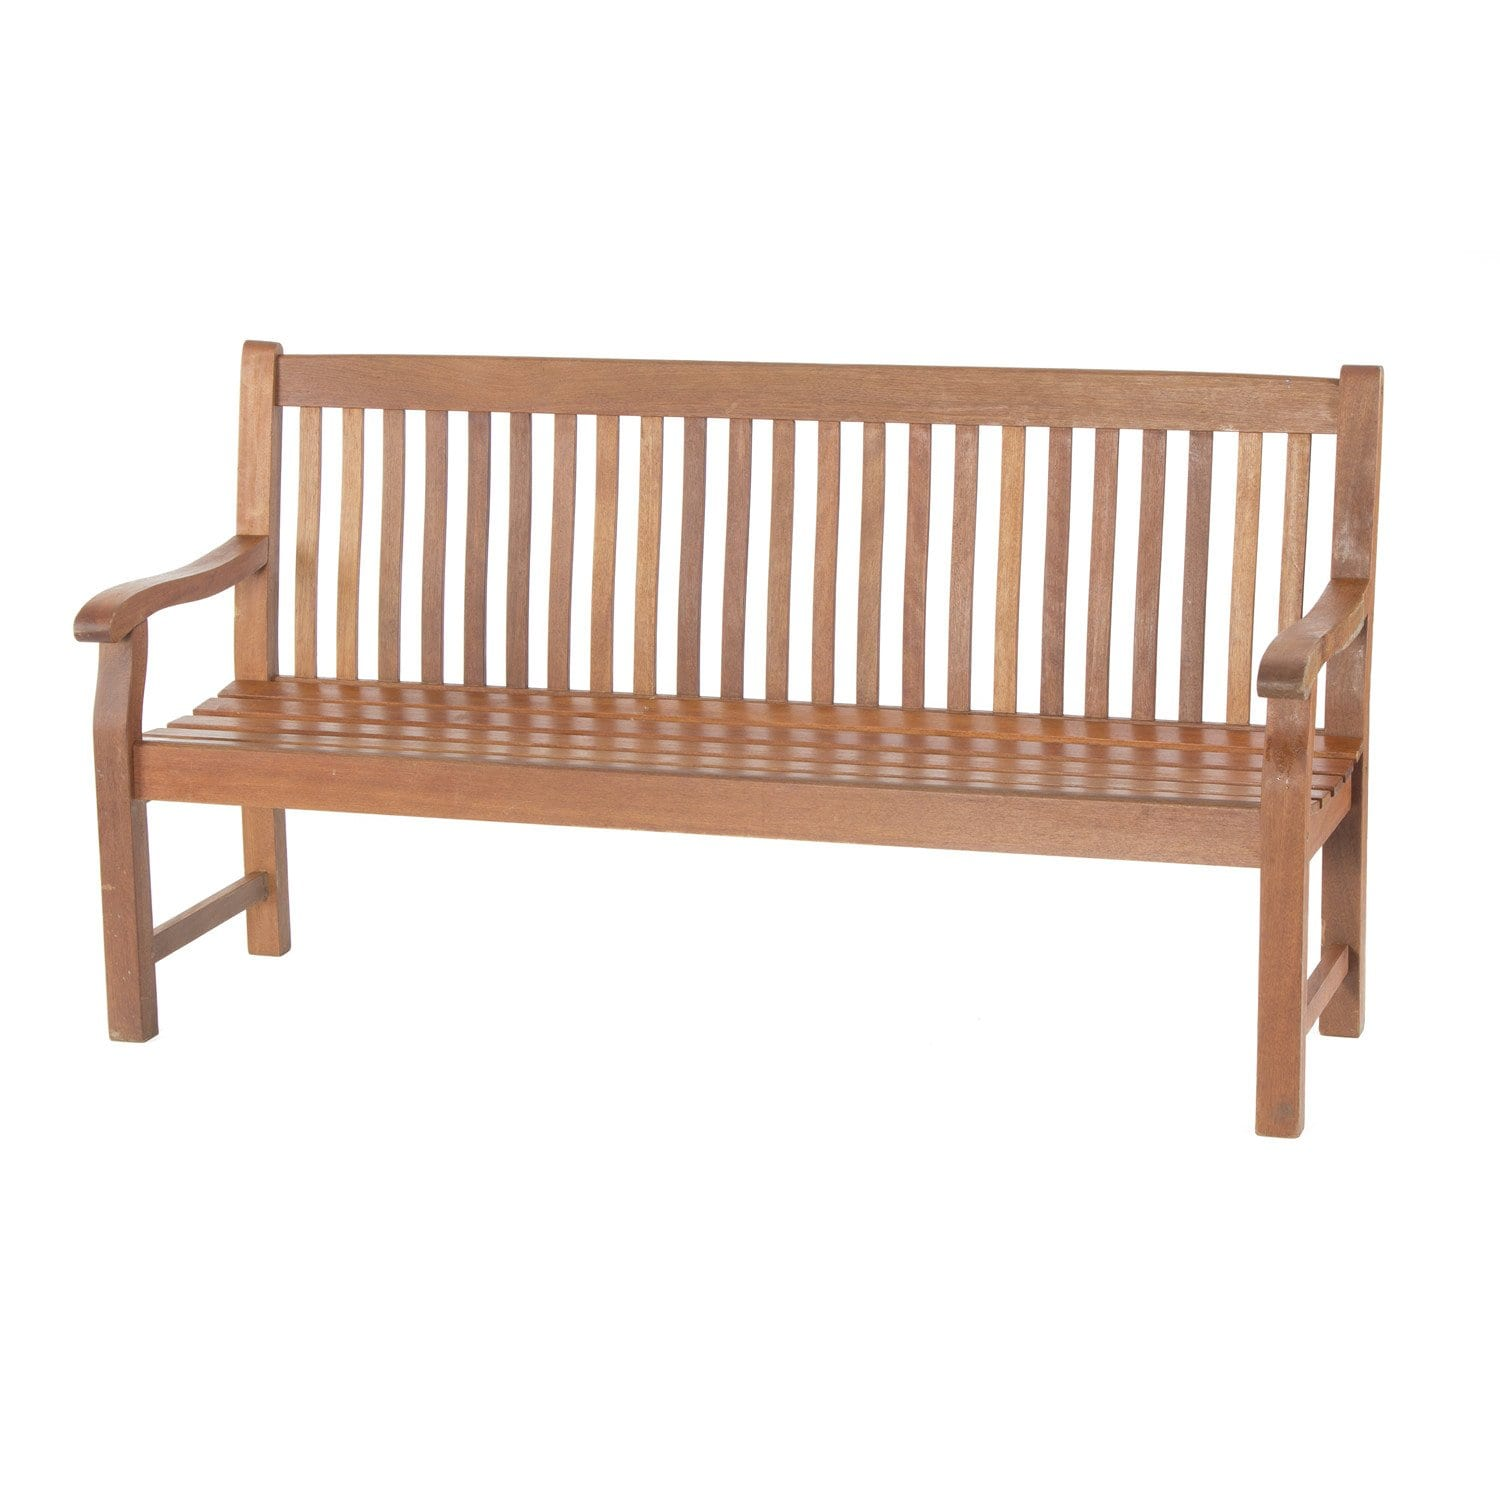 Wooden Picnic Bench